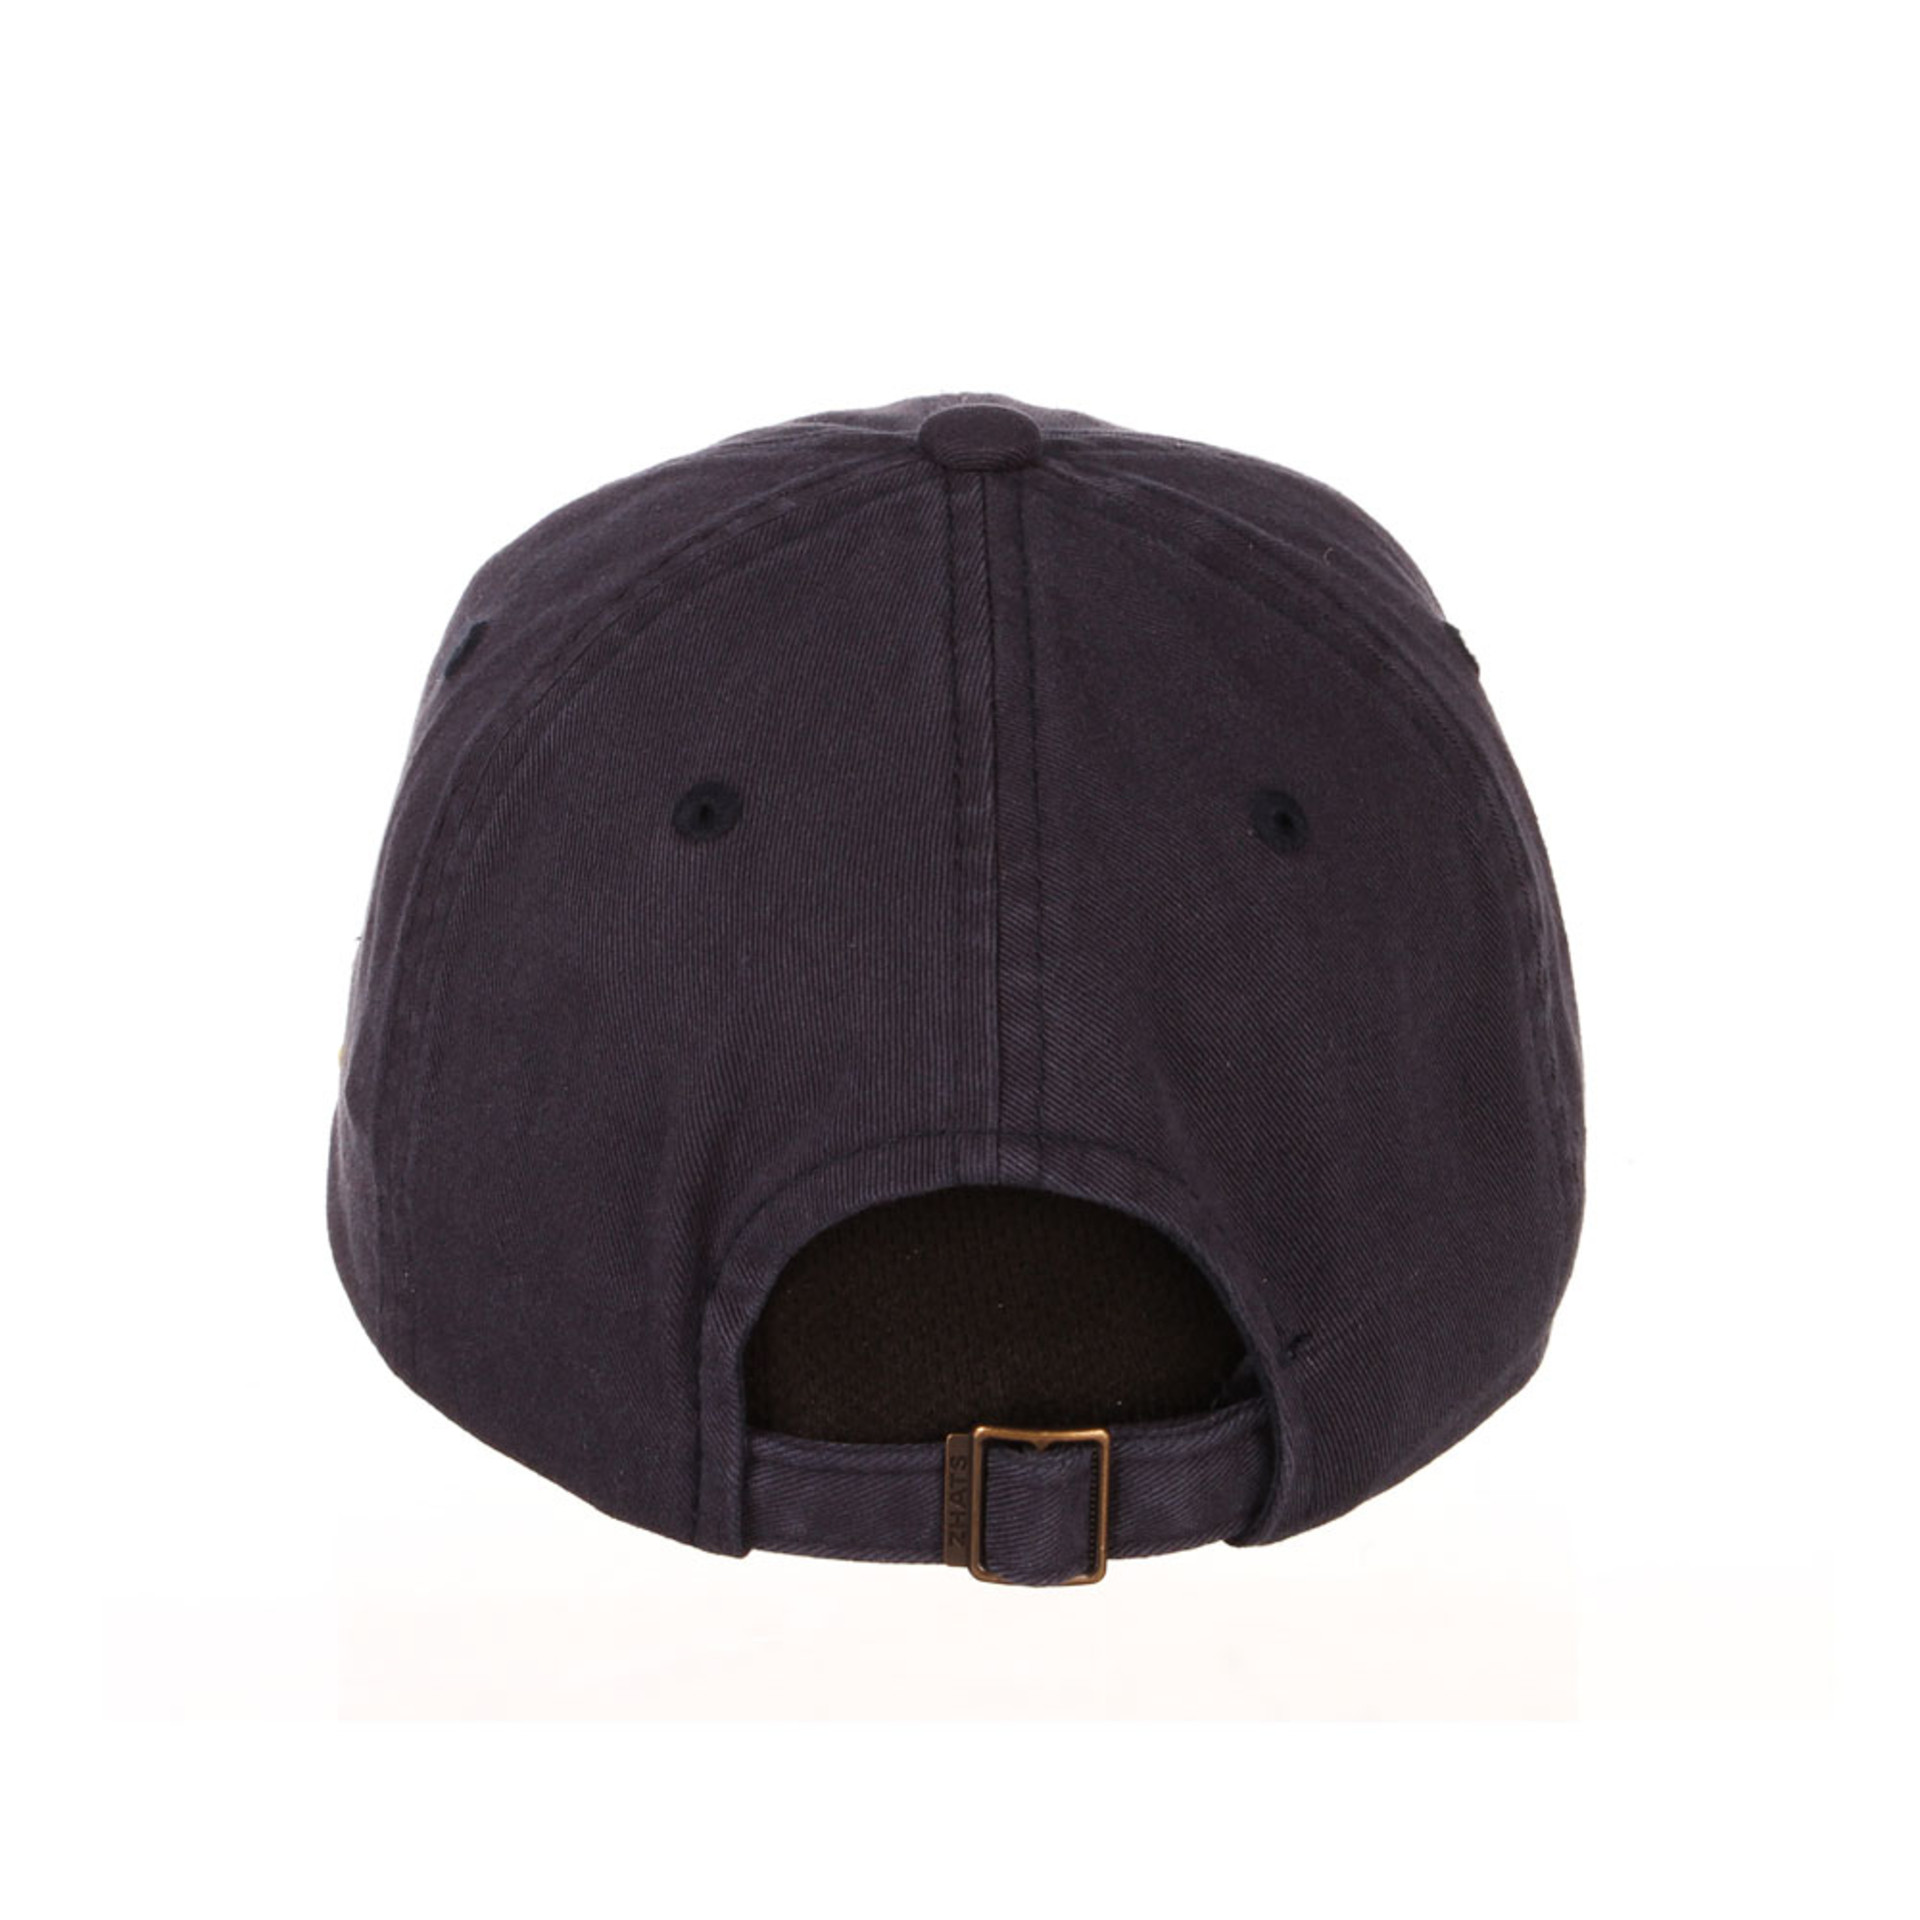 Zephyr Unisex Navy W Oar Scholarship Adjustable Hat – Back